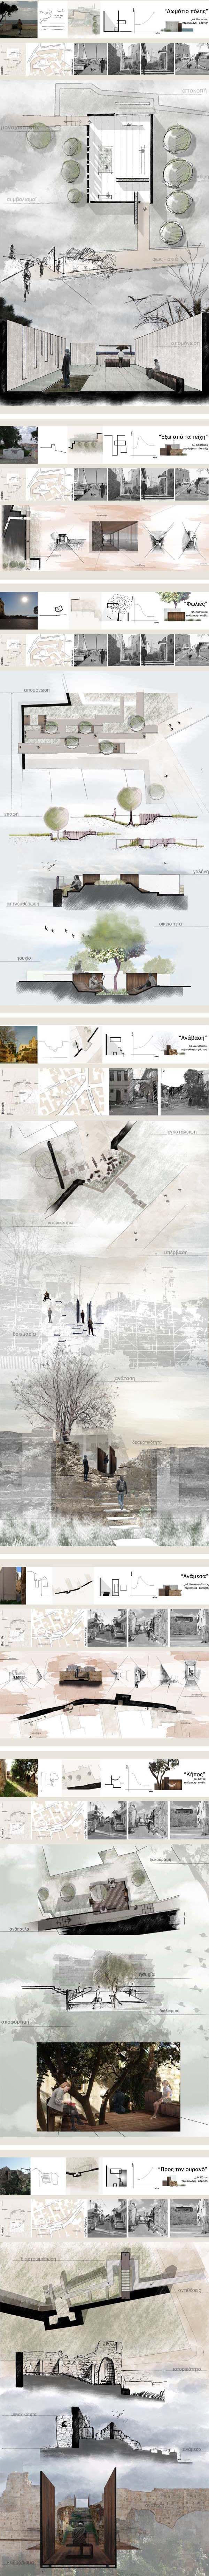 Articles - STUDENTS PROJECTS - DESIGN PROJECTS - PROJECTS2013 - Feel(in)g the city...